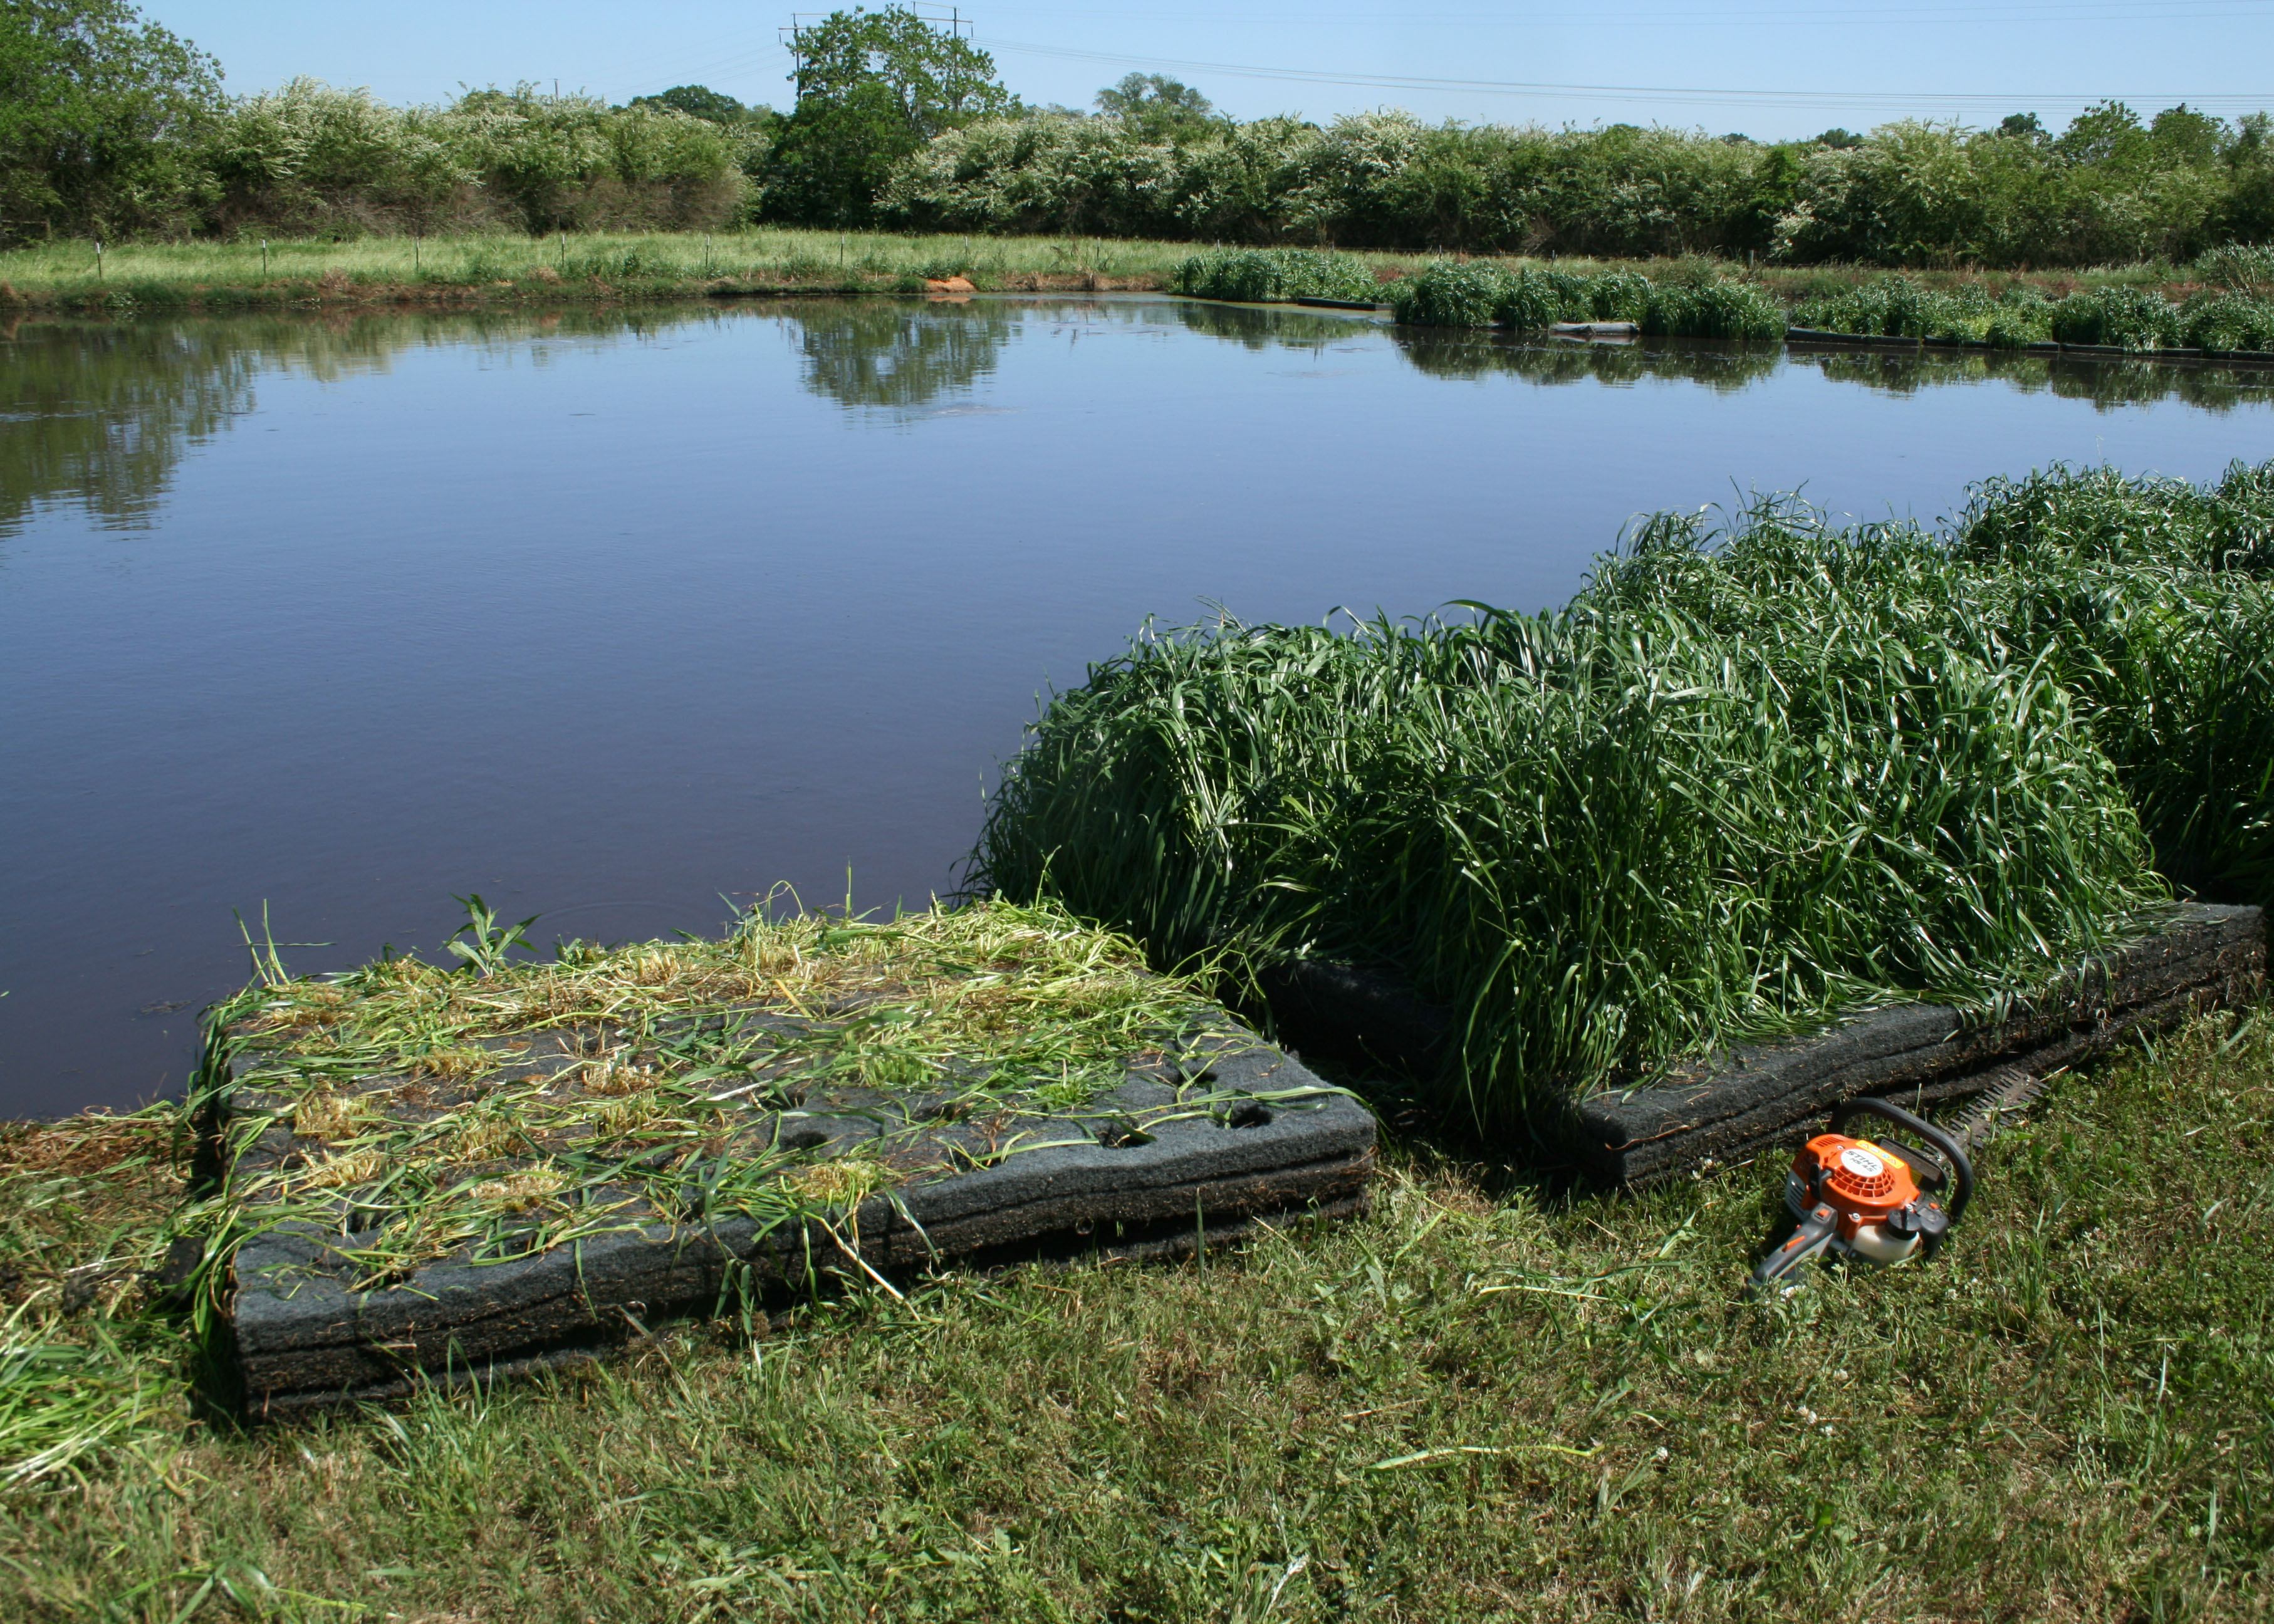 Treatment of Human Wastewater Using Floating Wetlands Systems